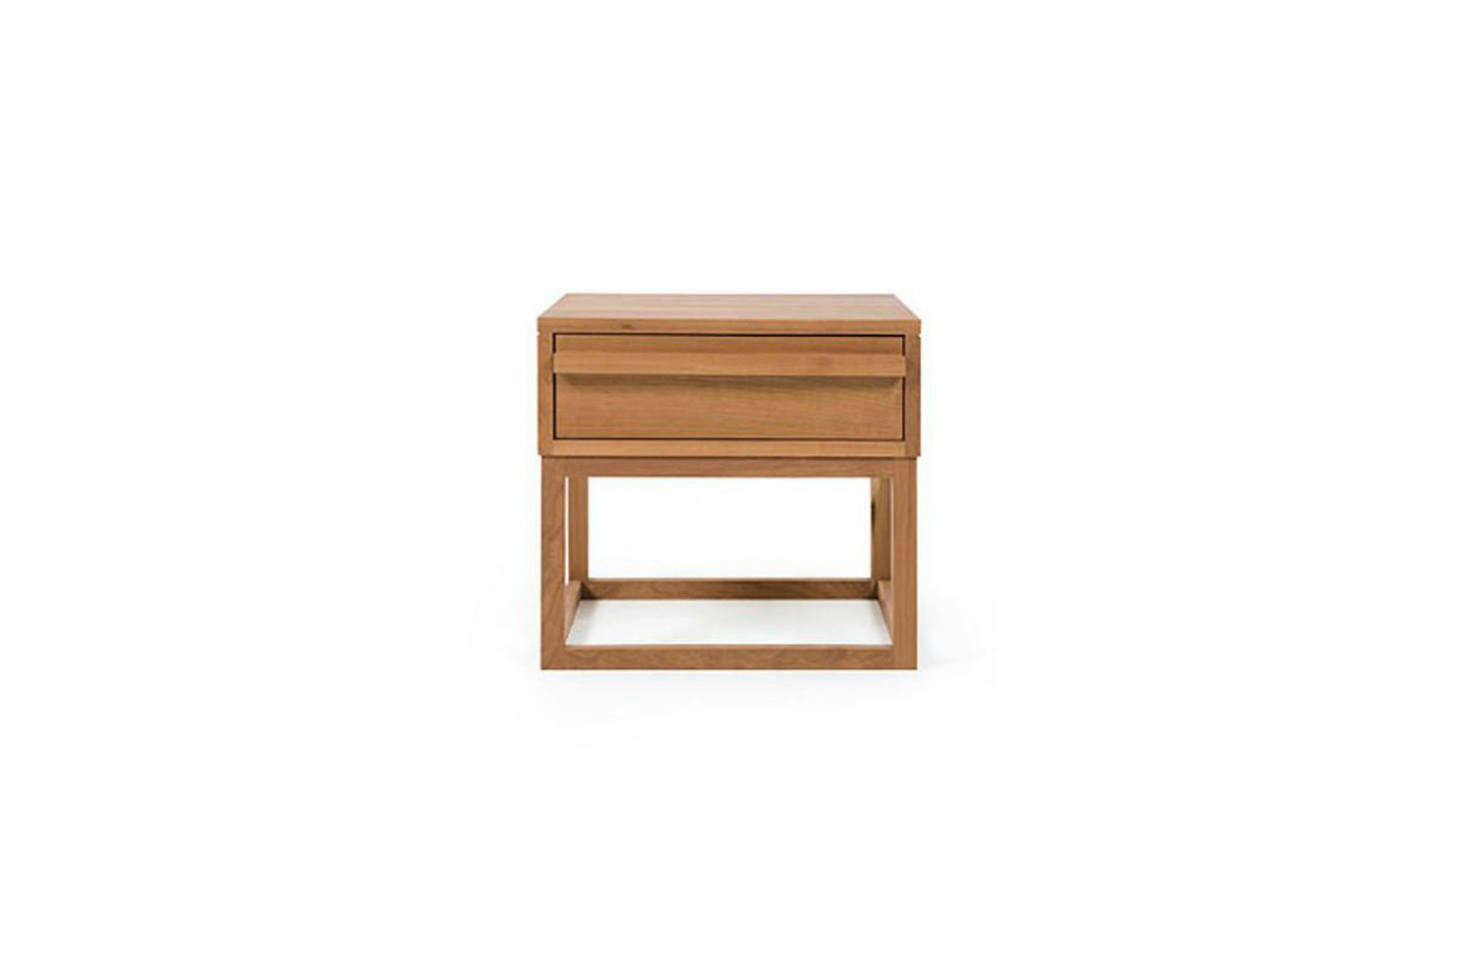 De La Espadau0027s 012 Atlantico Bedside Table Consists Of A Single Drawer  Resting On An Open